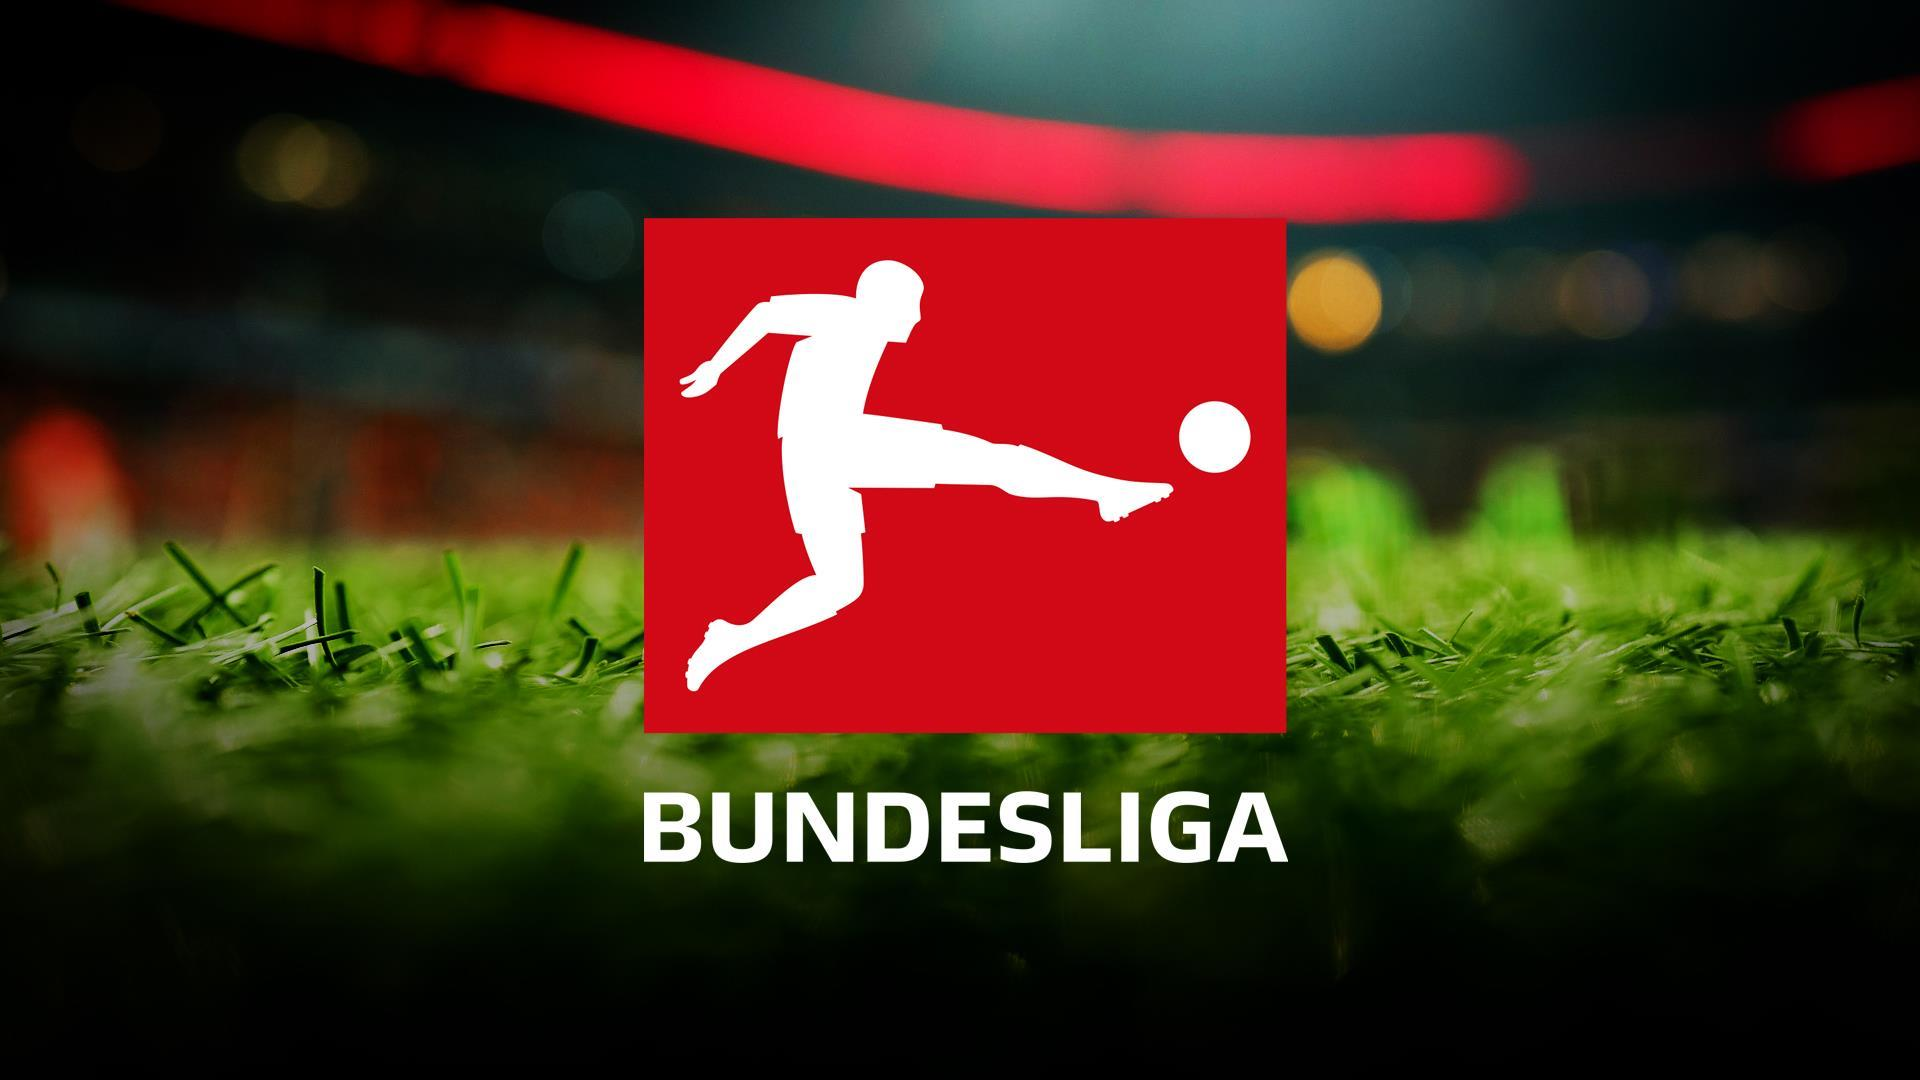 World Football Badges News: Germany - 2017/18 2. Bundesliga